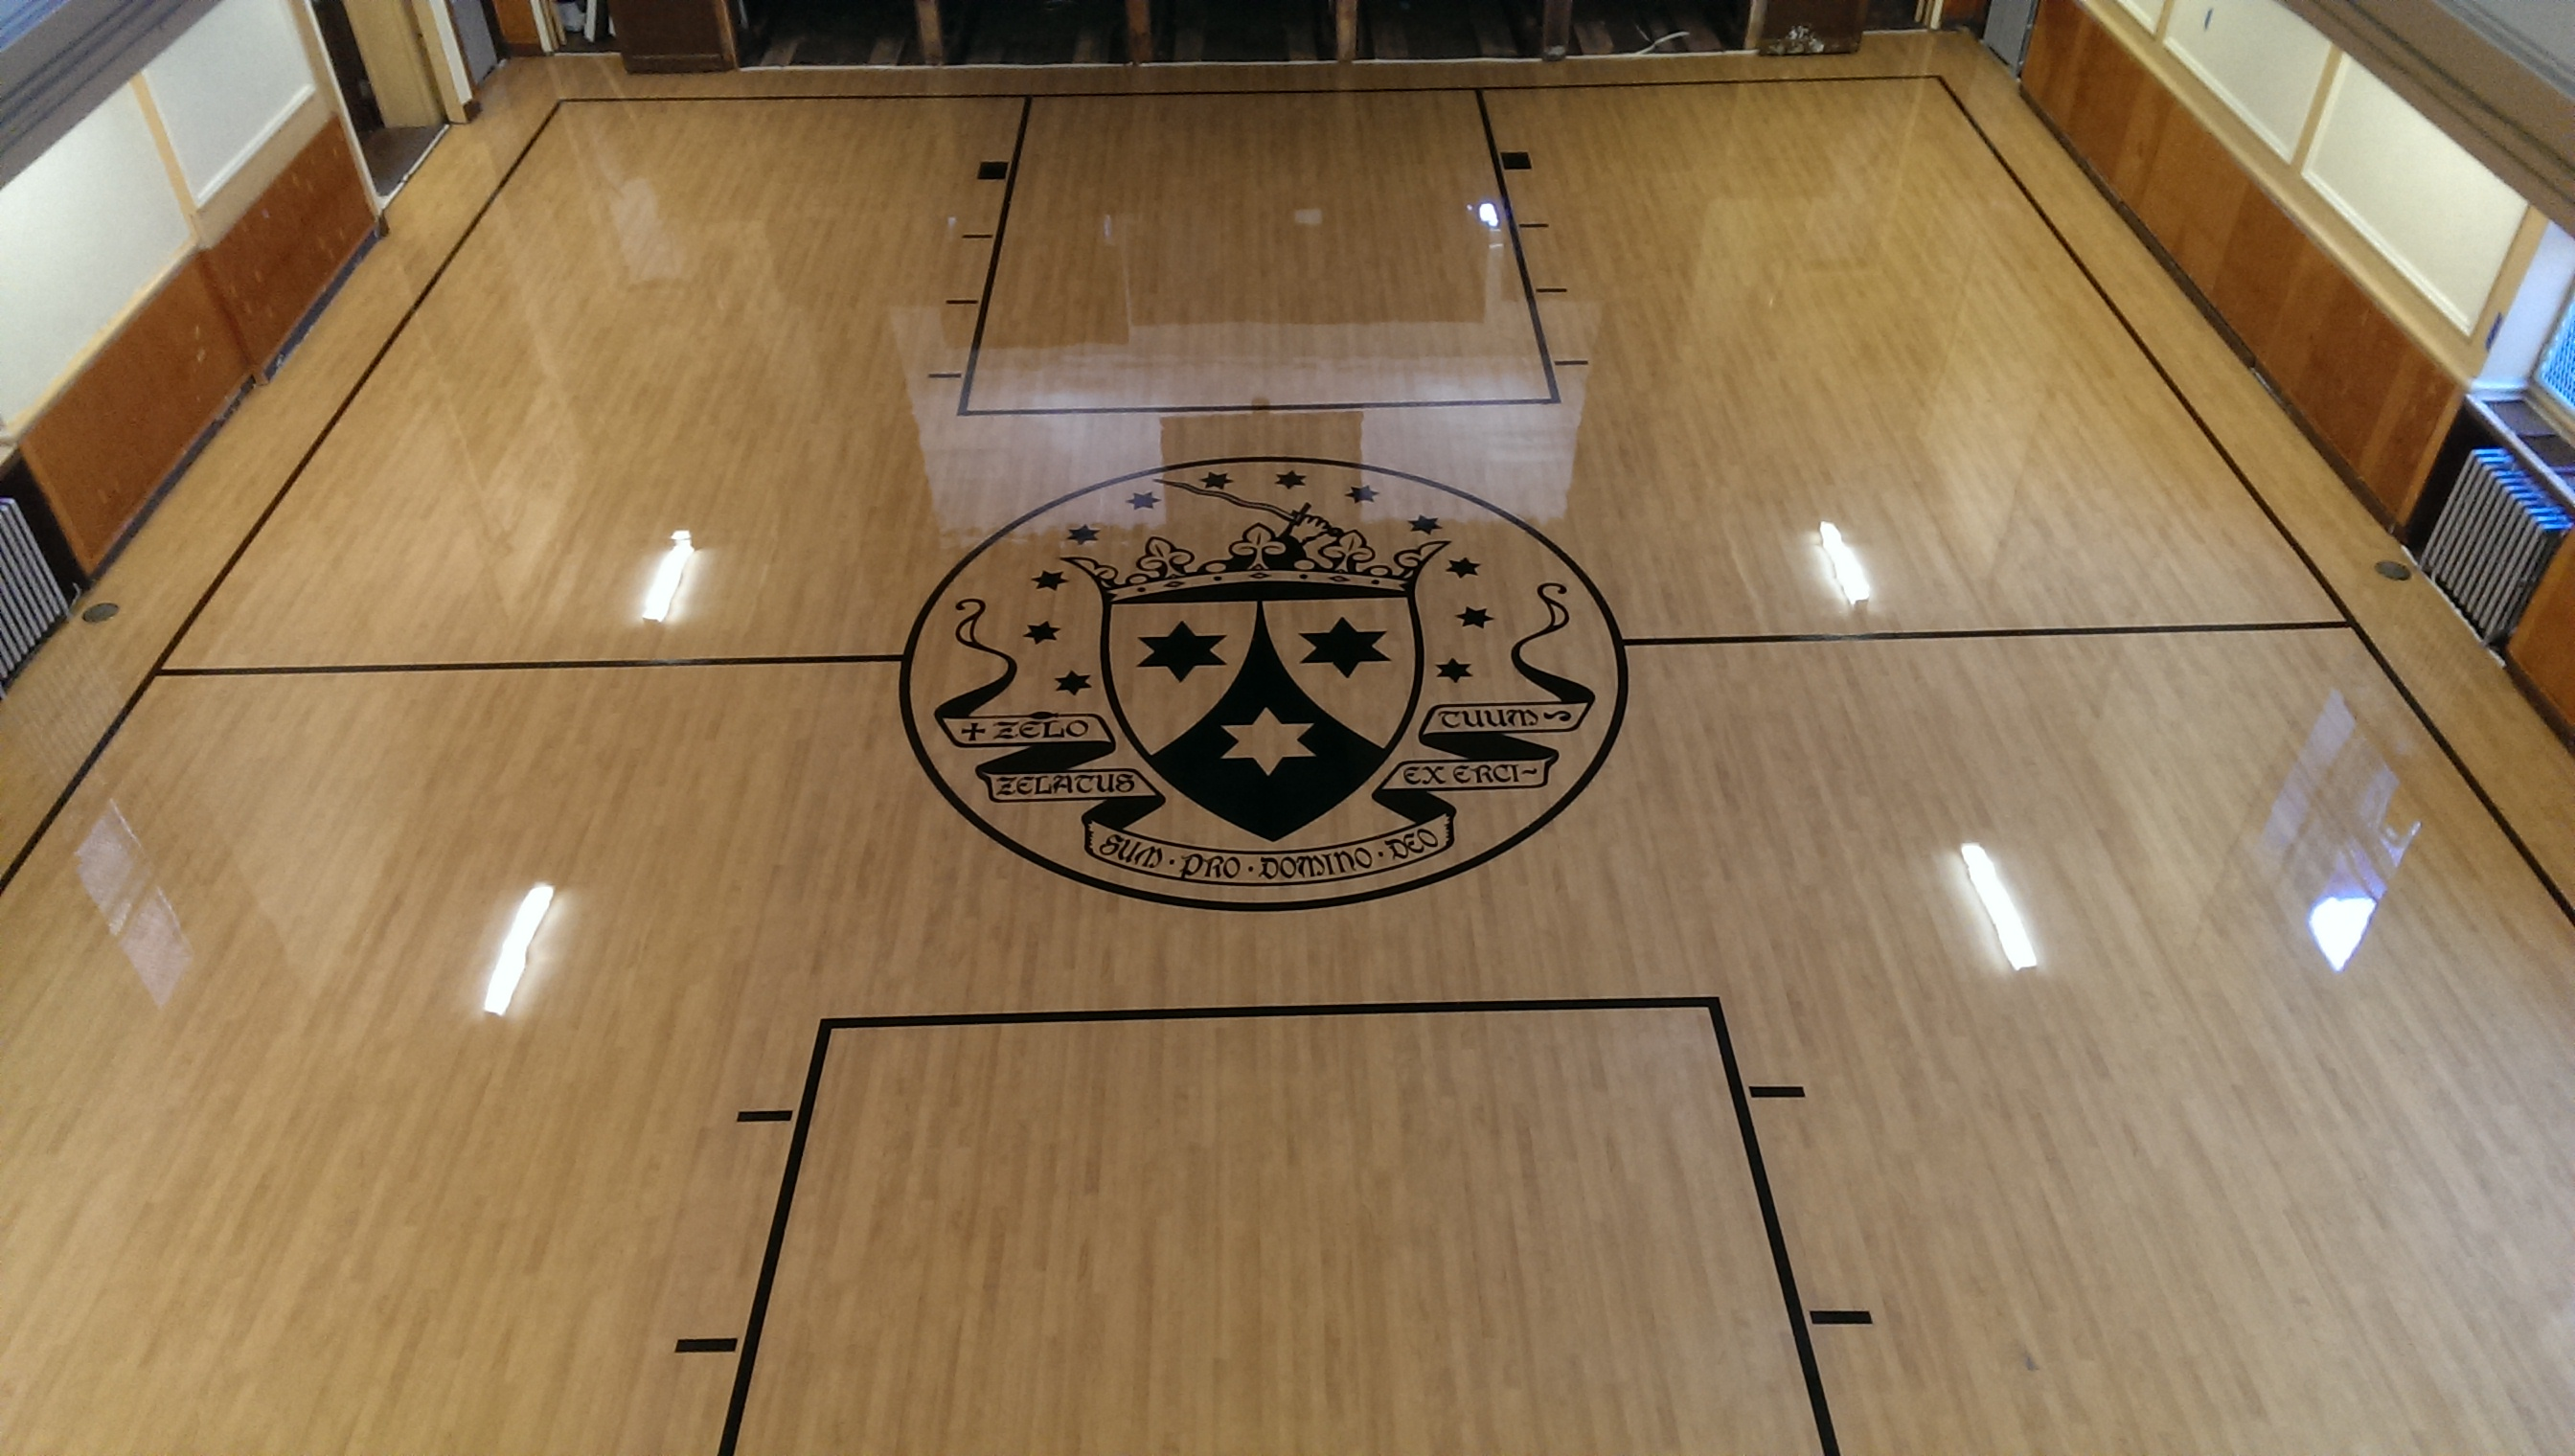 Superb Architectural Flooring Resource Is Proud To Be Known As The Premier Connor  Sports Flooring Dealer For The New York Metropolitan Area.